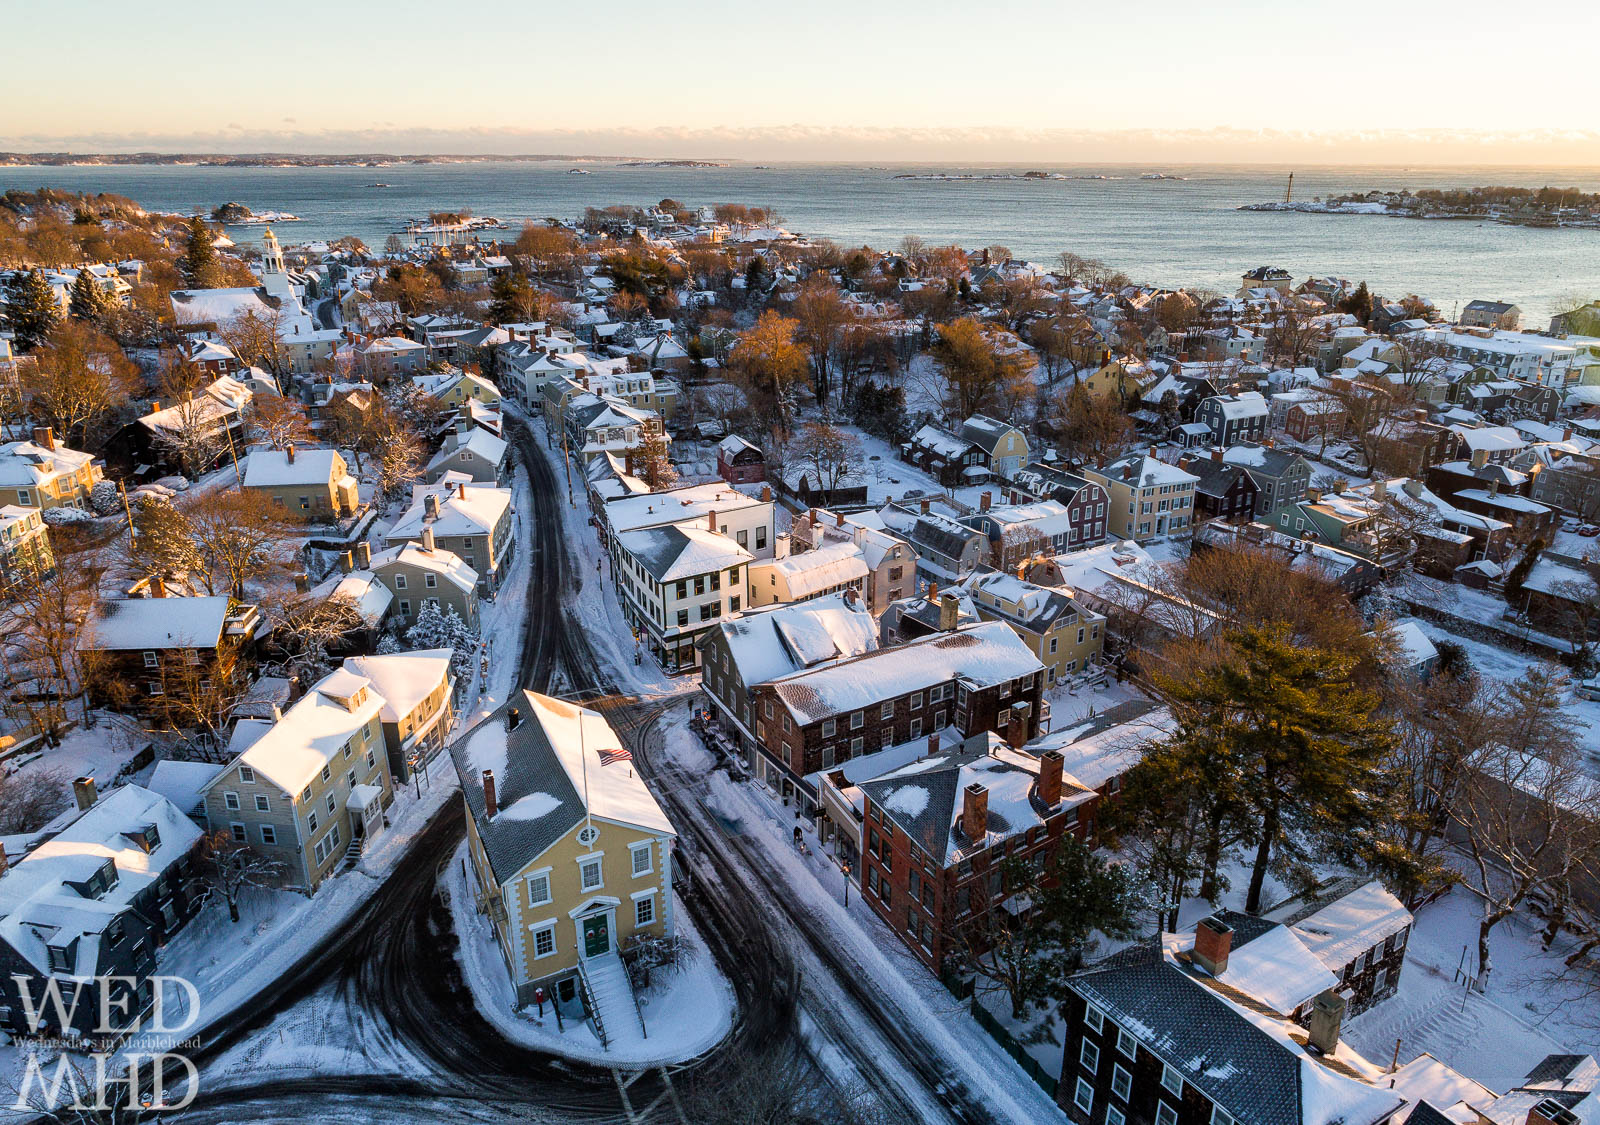 Old Town House and historic downtown are captured on a snowy morning in Marblehead.  The aerial view includes historic homes and Marblehead Light across the harbor.